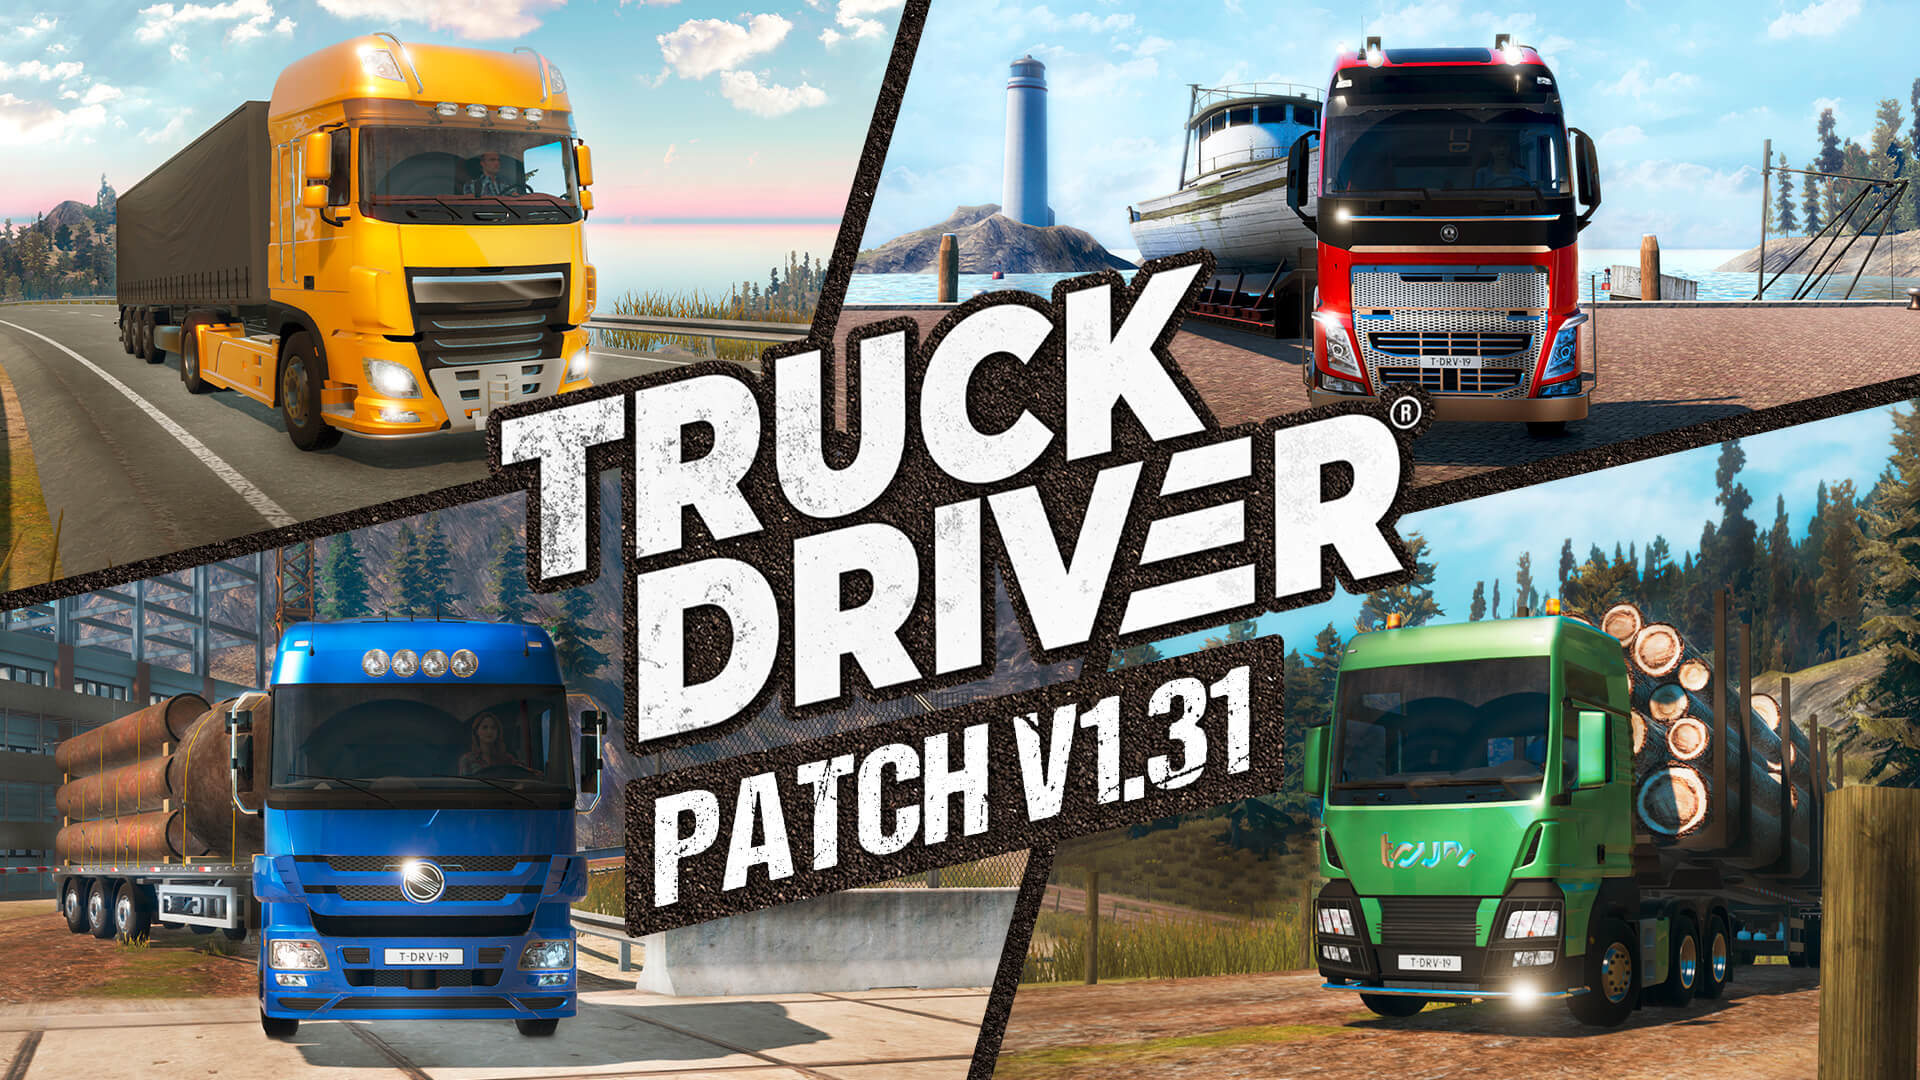 Truck Driver update v1.31 now live on PlayStation®4, Xbox One, Steam & Epic Games Store